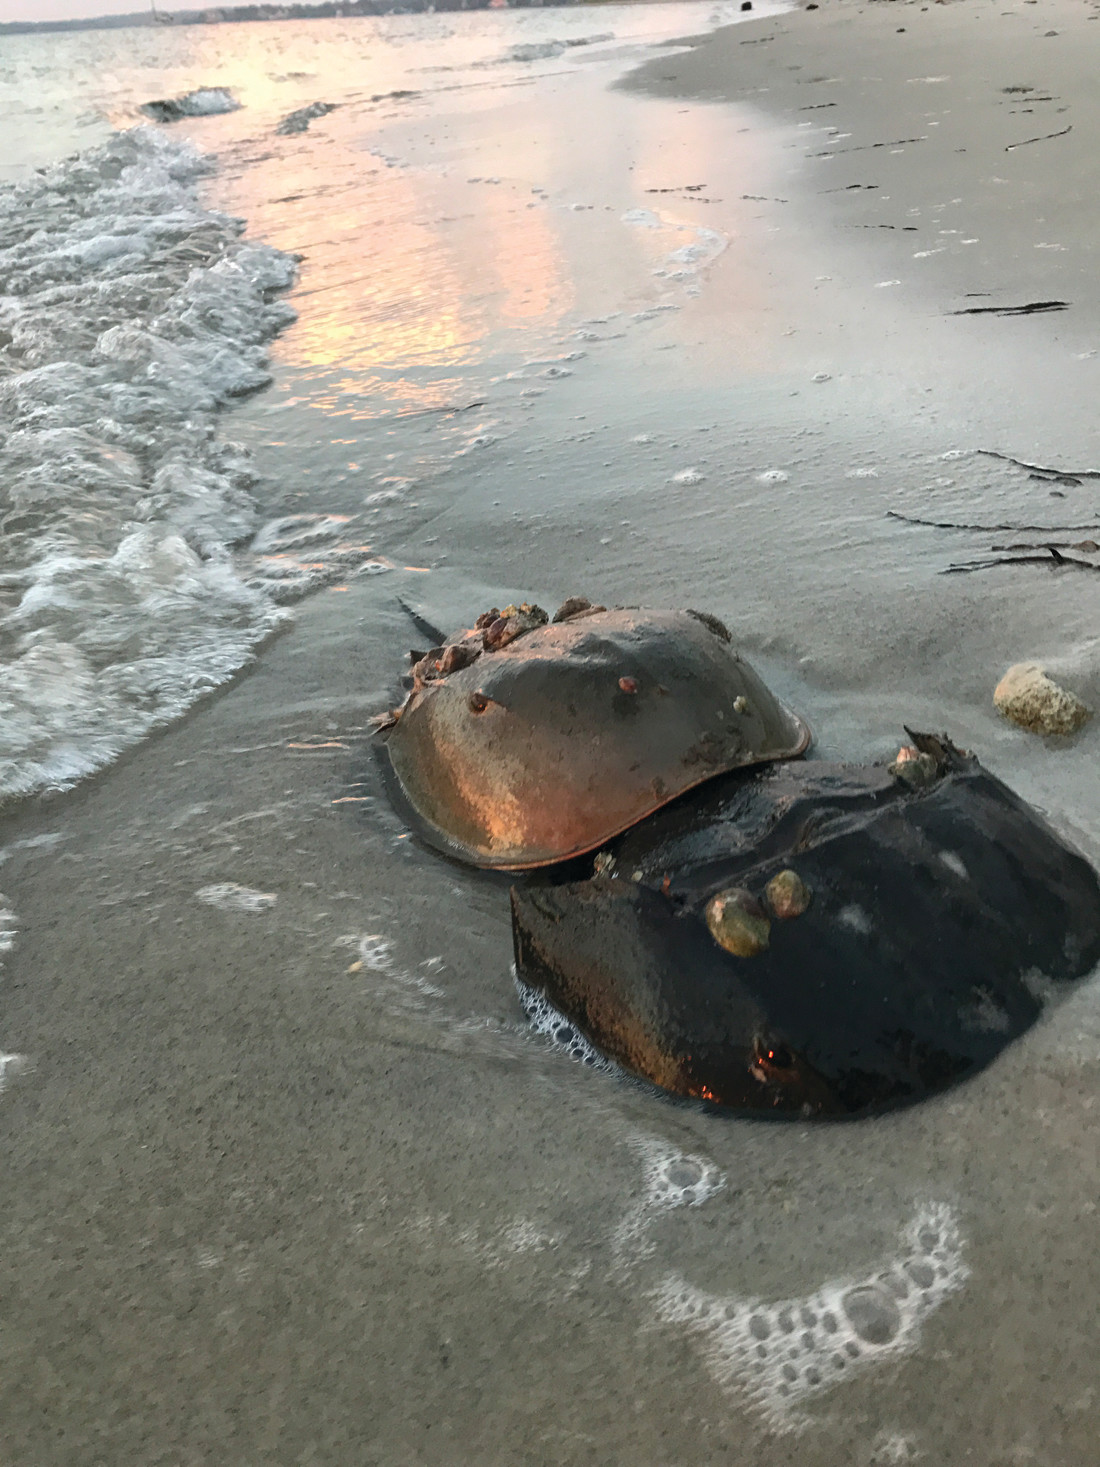 THOUSANDS OF EGGS: A pair of mating horseshoe crabs on the beach at high tide.